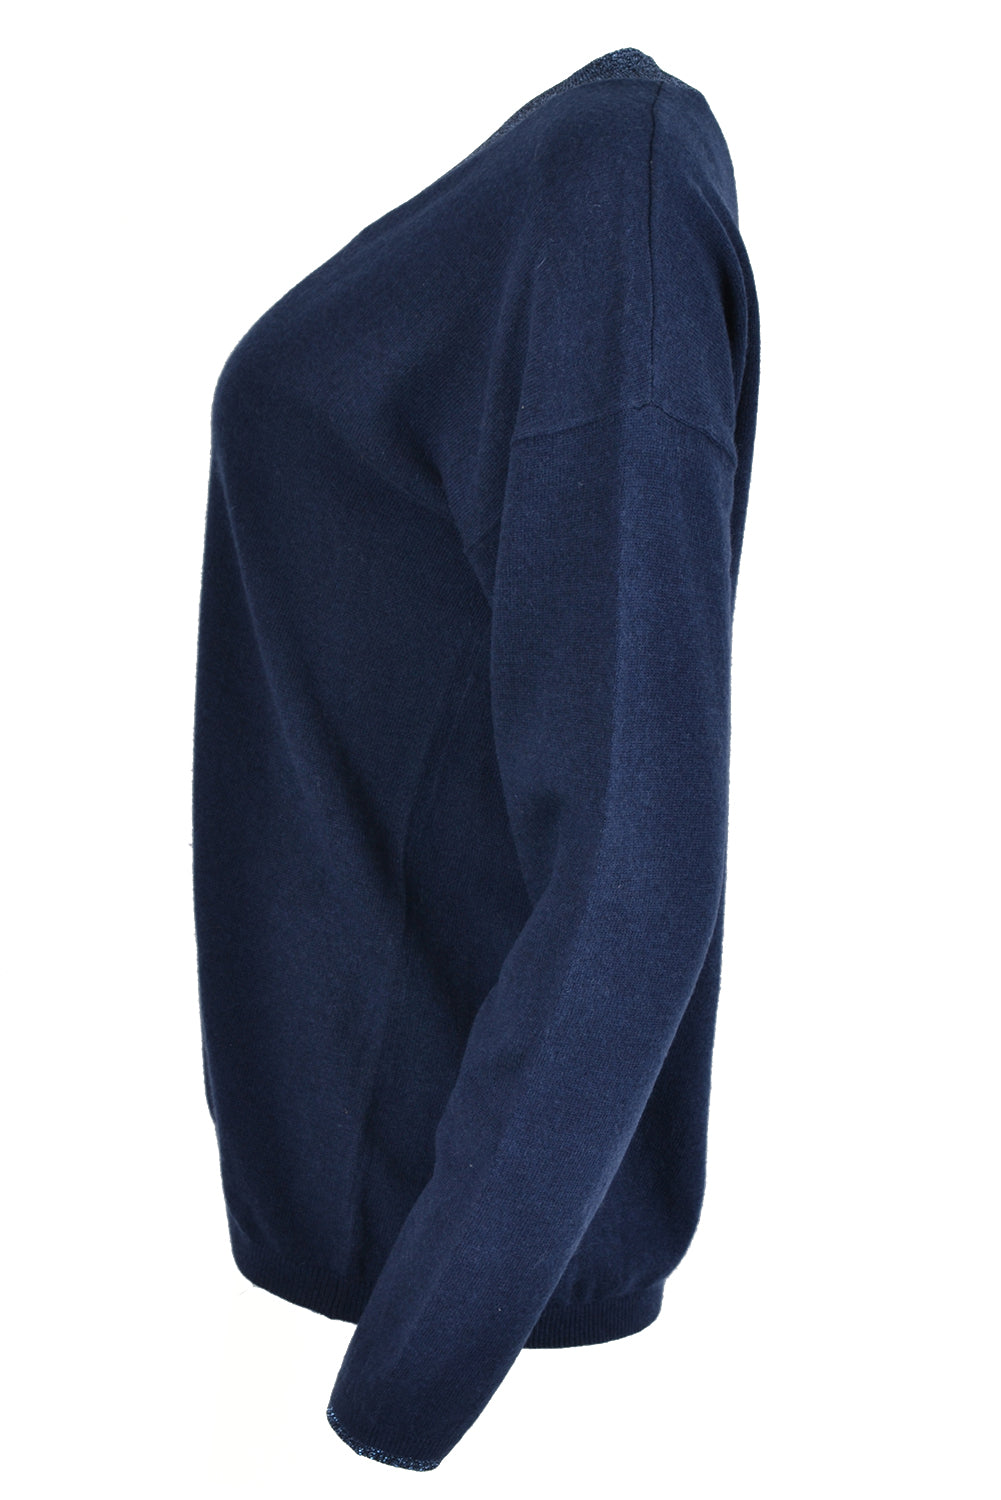 Jeff LUCAS Lurex V Neck Cardigan Navy